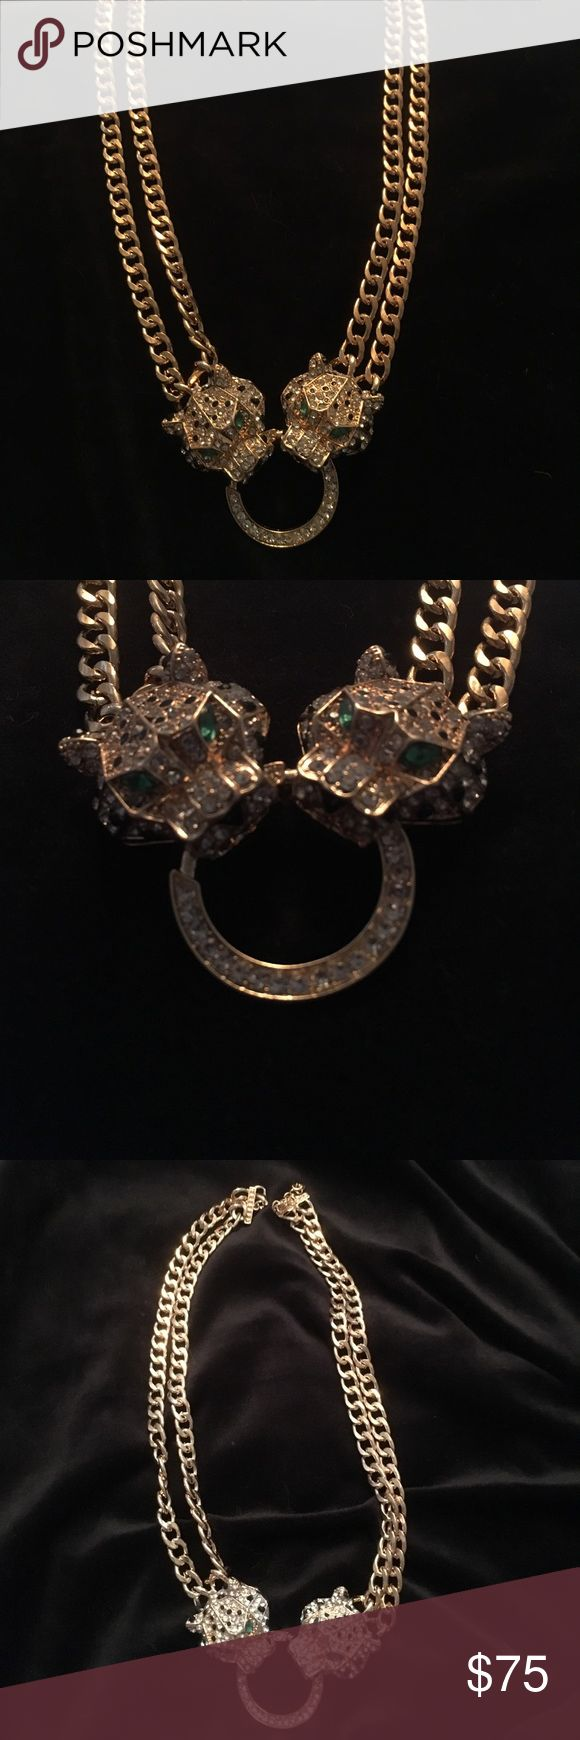 "NWOT Jag. Necklace NWOT- Gold  Tone Jaguar Swarovski Crystal Green Eye Necklace W/ Swarovski Black Crystals On His Head & Swarovski Crystals Through Out Head.    18""Length & 2"" extra in space. Ask Questions!!! its gorgeous!!                        💐HAVE RING TOO... At right Price... They Are Mine..... Jewelry Necklaces"